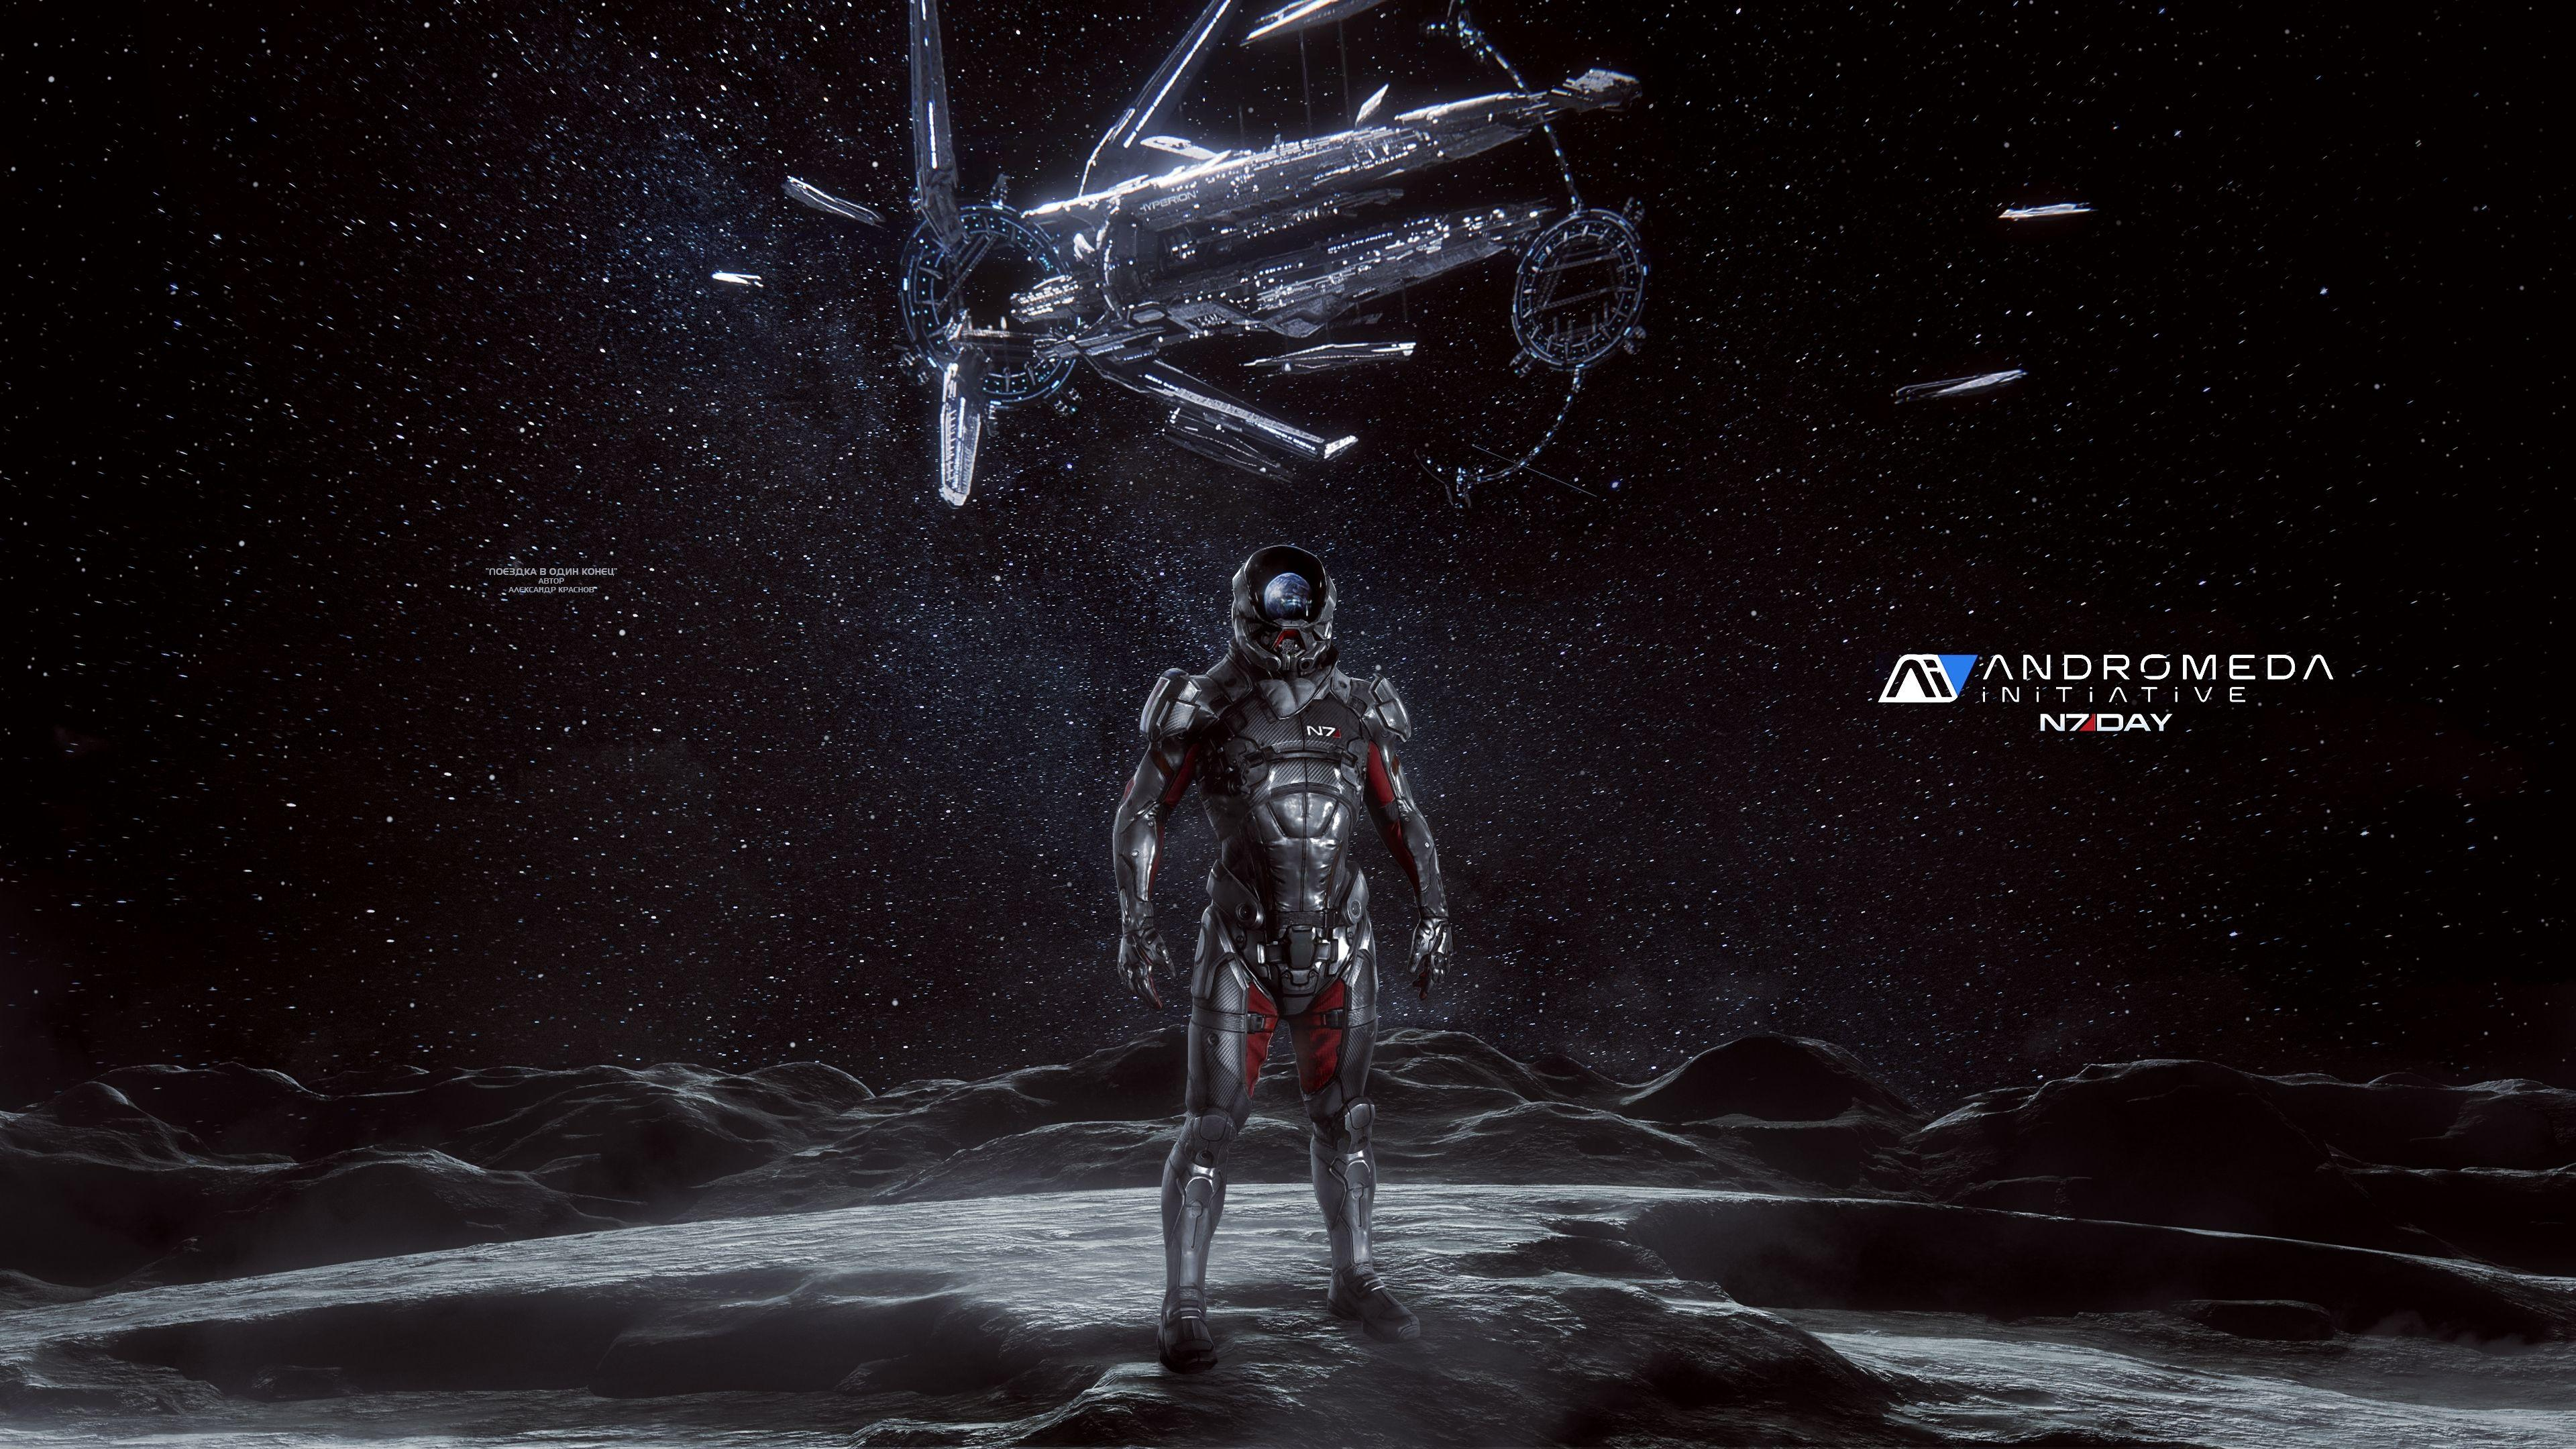 Mass Effect Andromeda Wallpapers - Wallpaper Cave